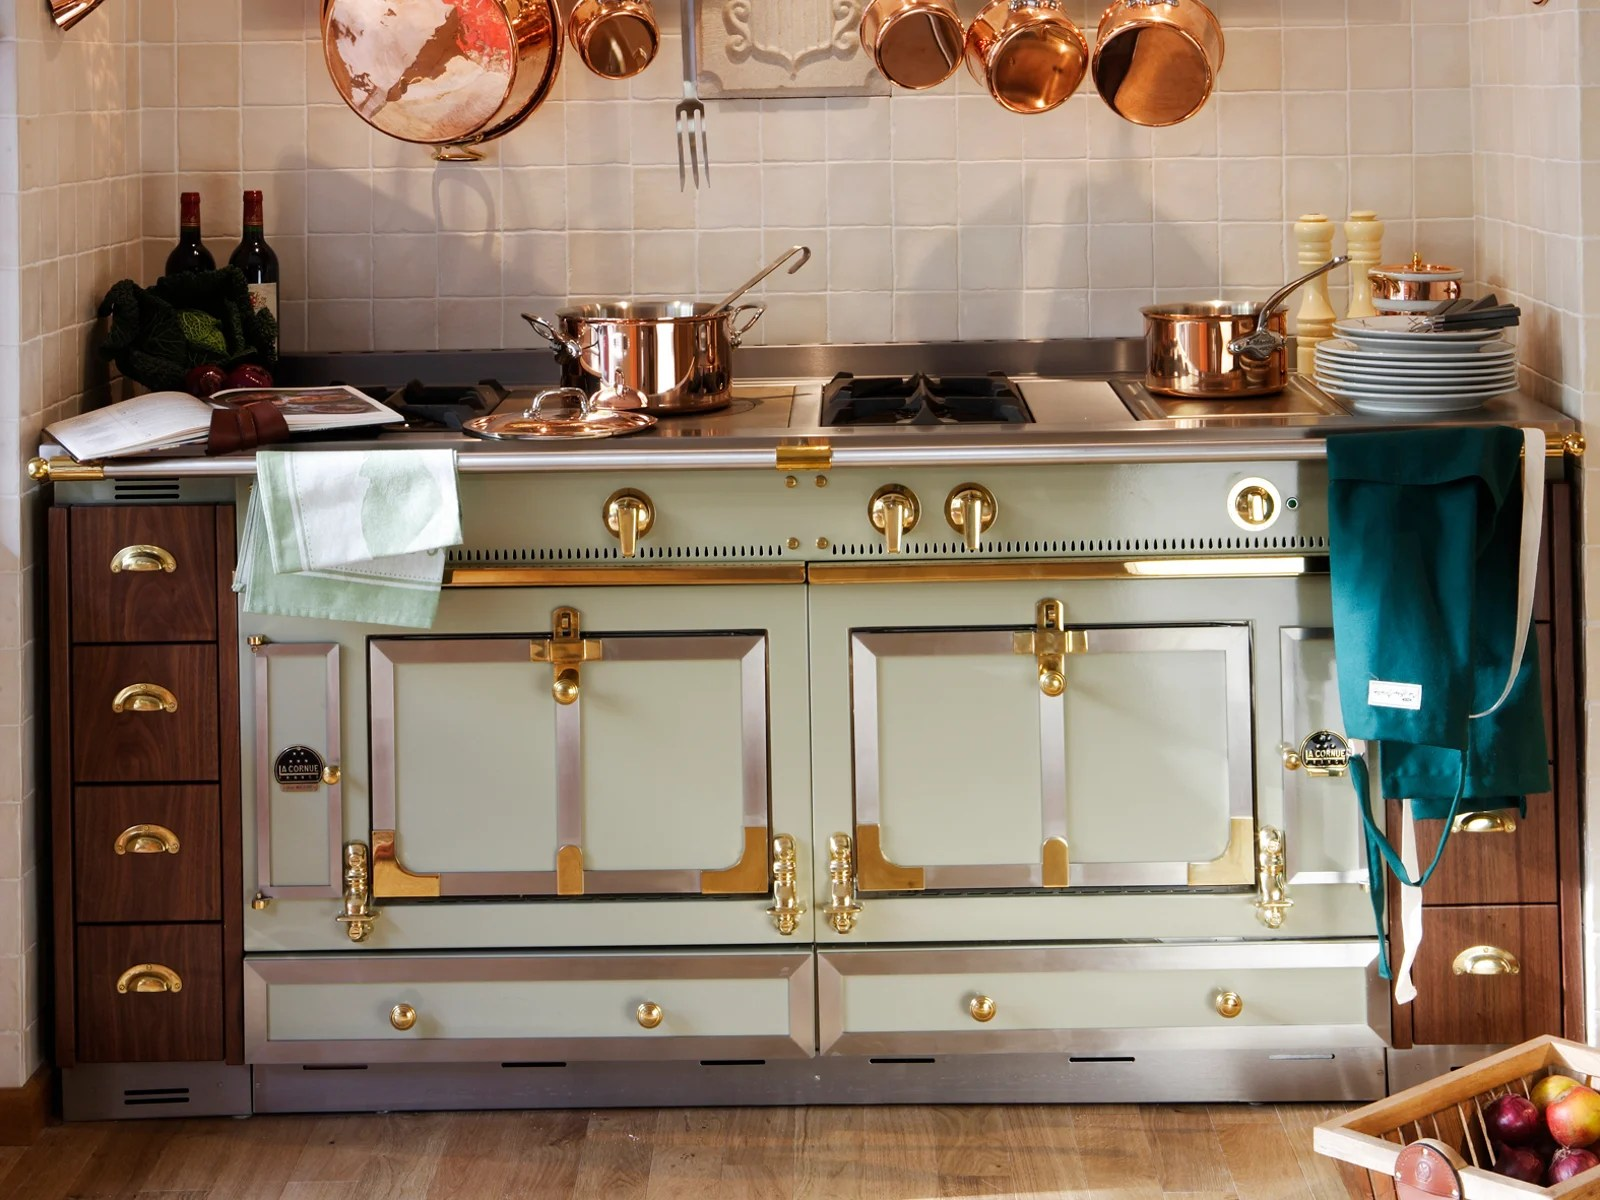 Stainless steel cooker CHTEAU 150 by La Cornue